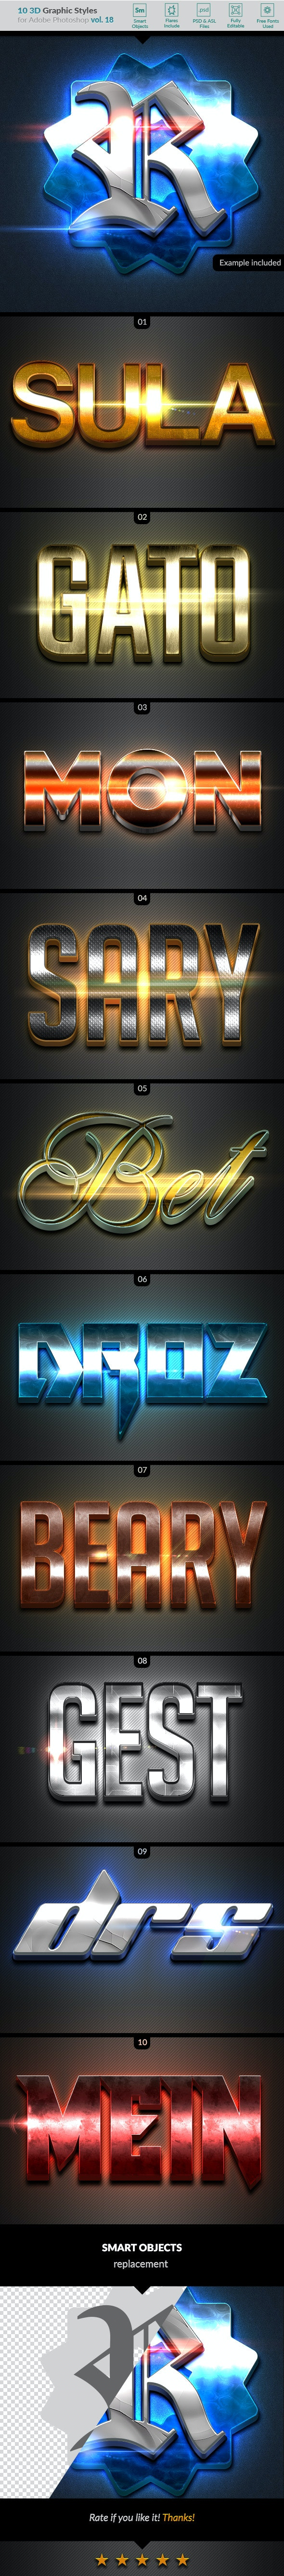 10 3D Styles vol. 18 - Text Effects Styles